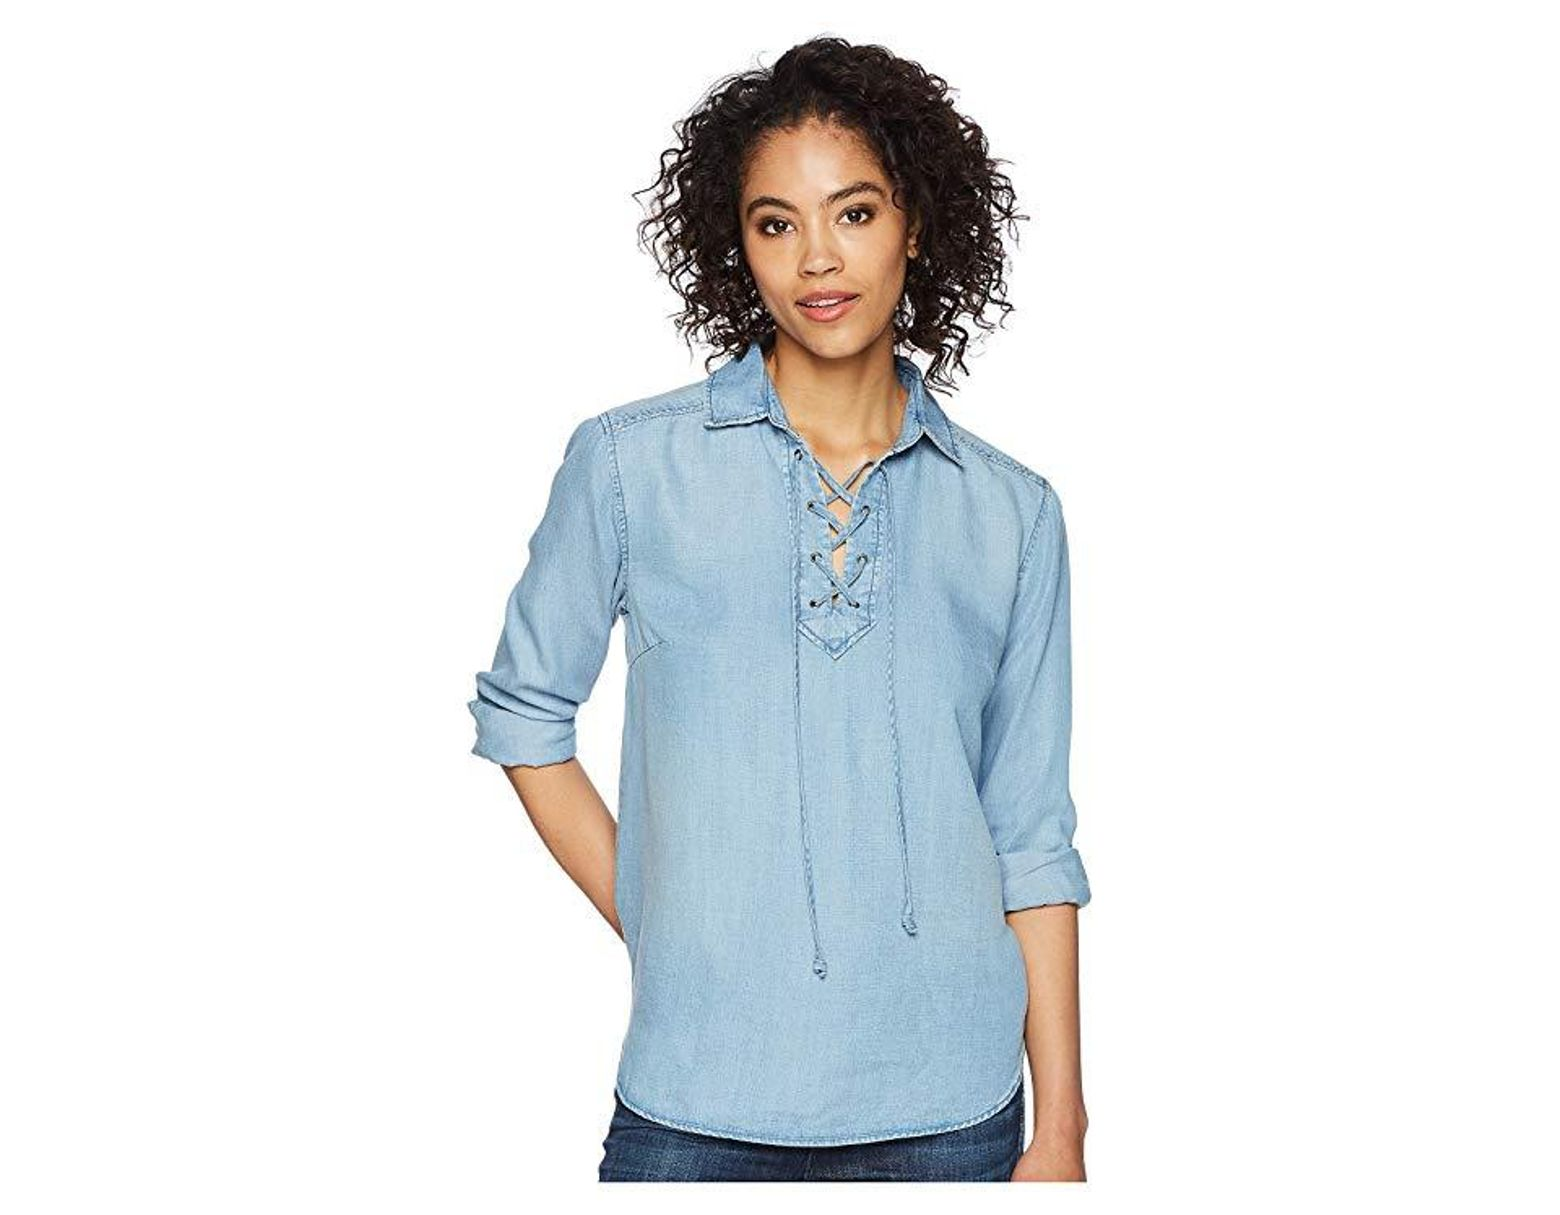 1aa01c4ff25a5f Liverpool Jeans Company Lace-up Front Shirt (sonoma Light) Clothing in Blue  - Save 47% - Lyst